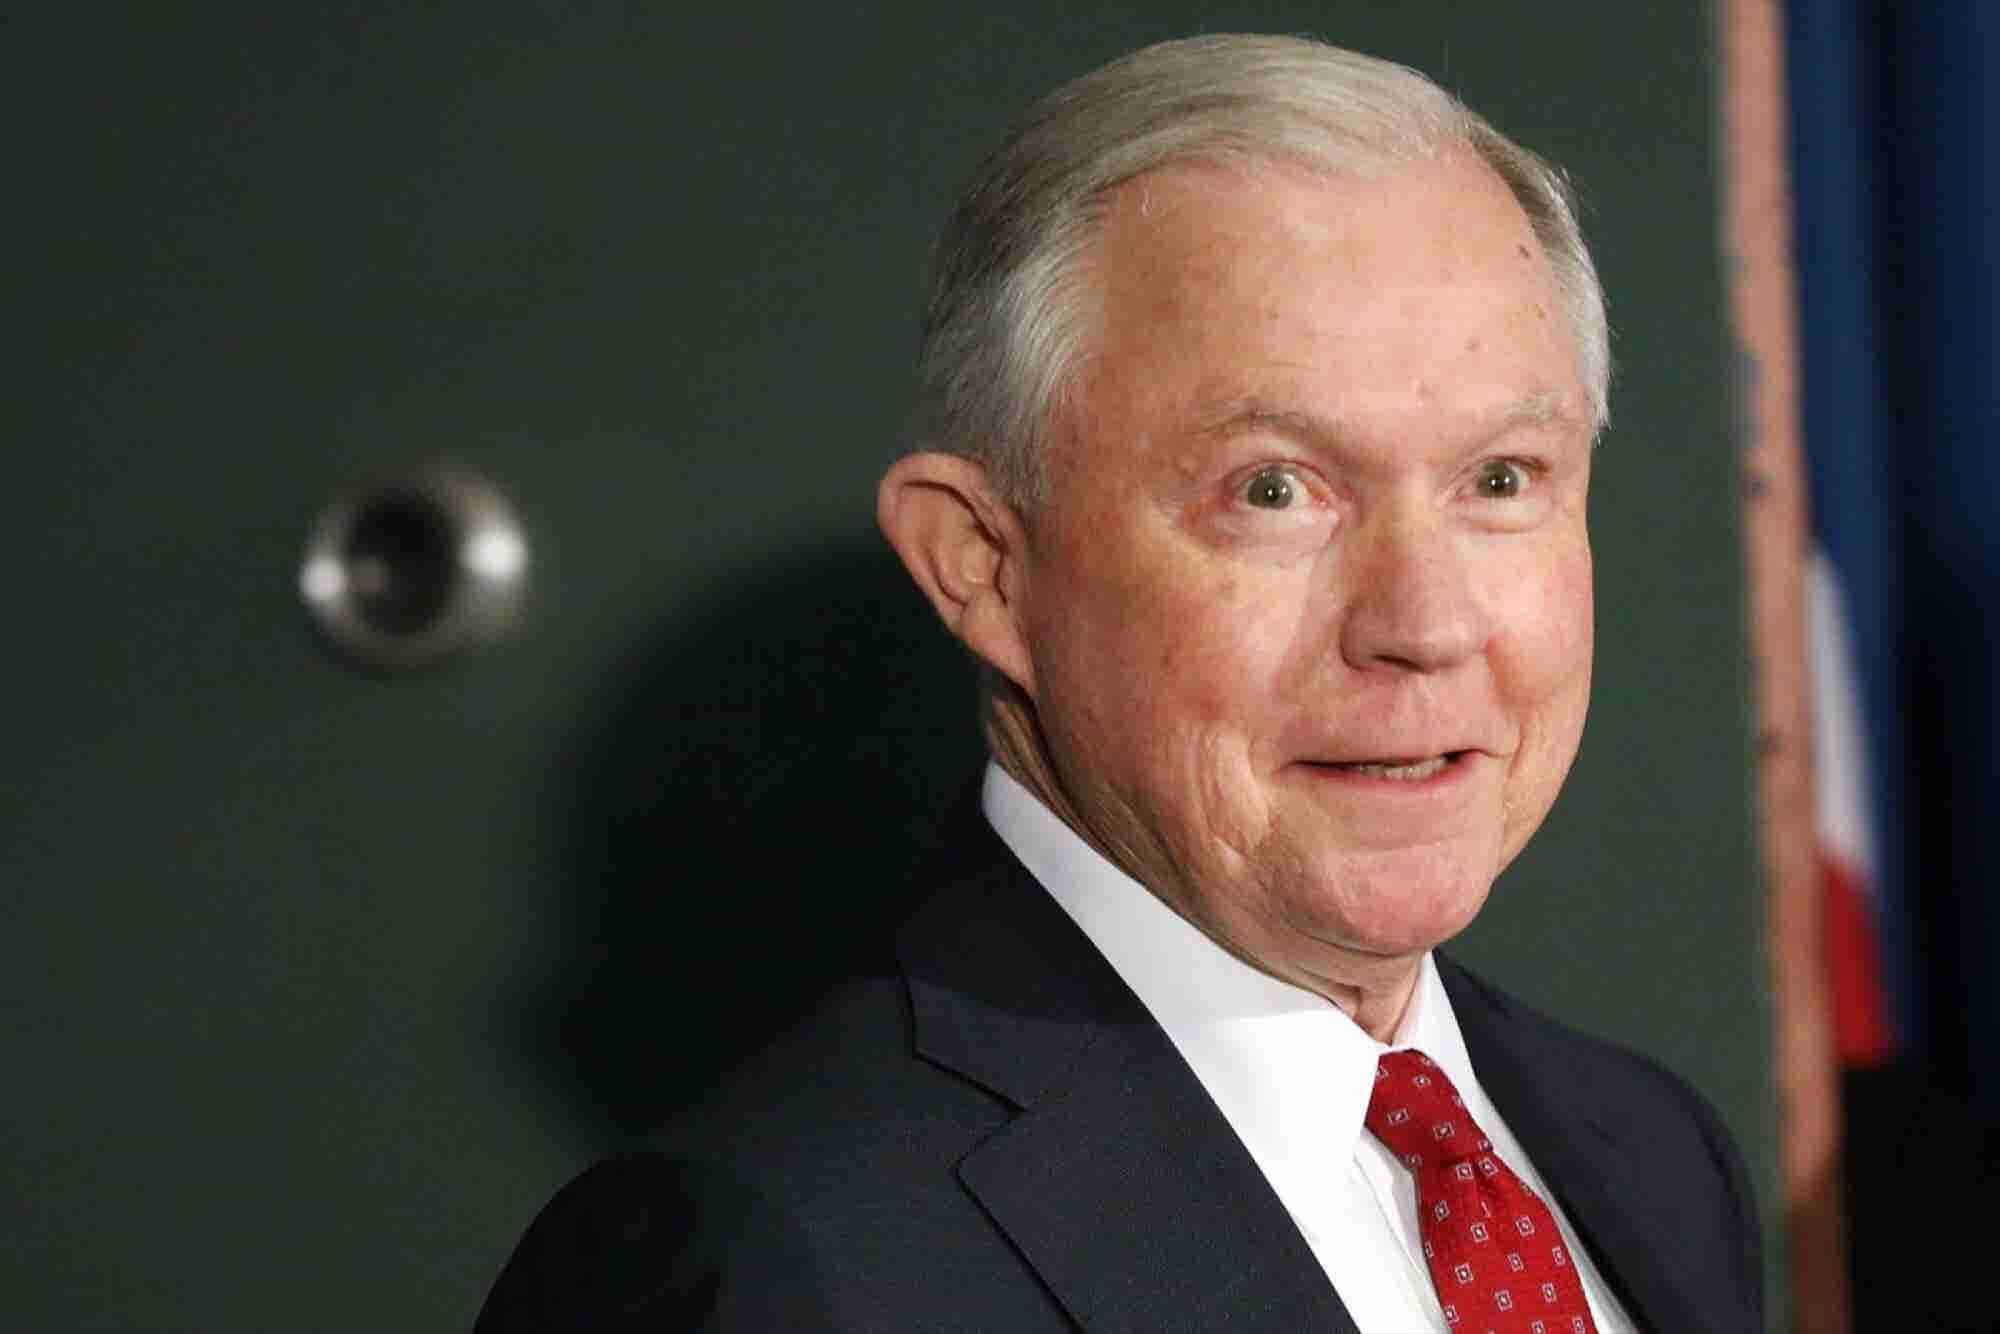 Jeff Sessions' 'Guidance' Cited by Maine's Governor In His Veto of Legal Marijuana Bill